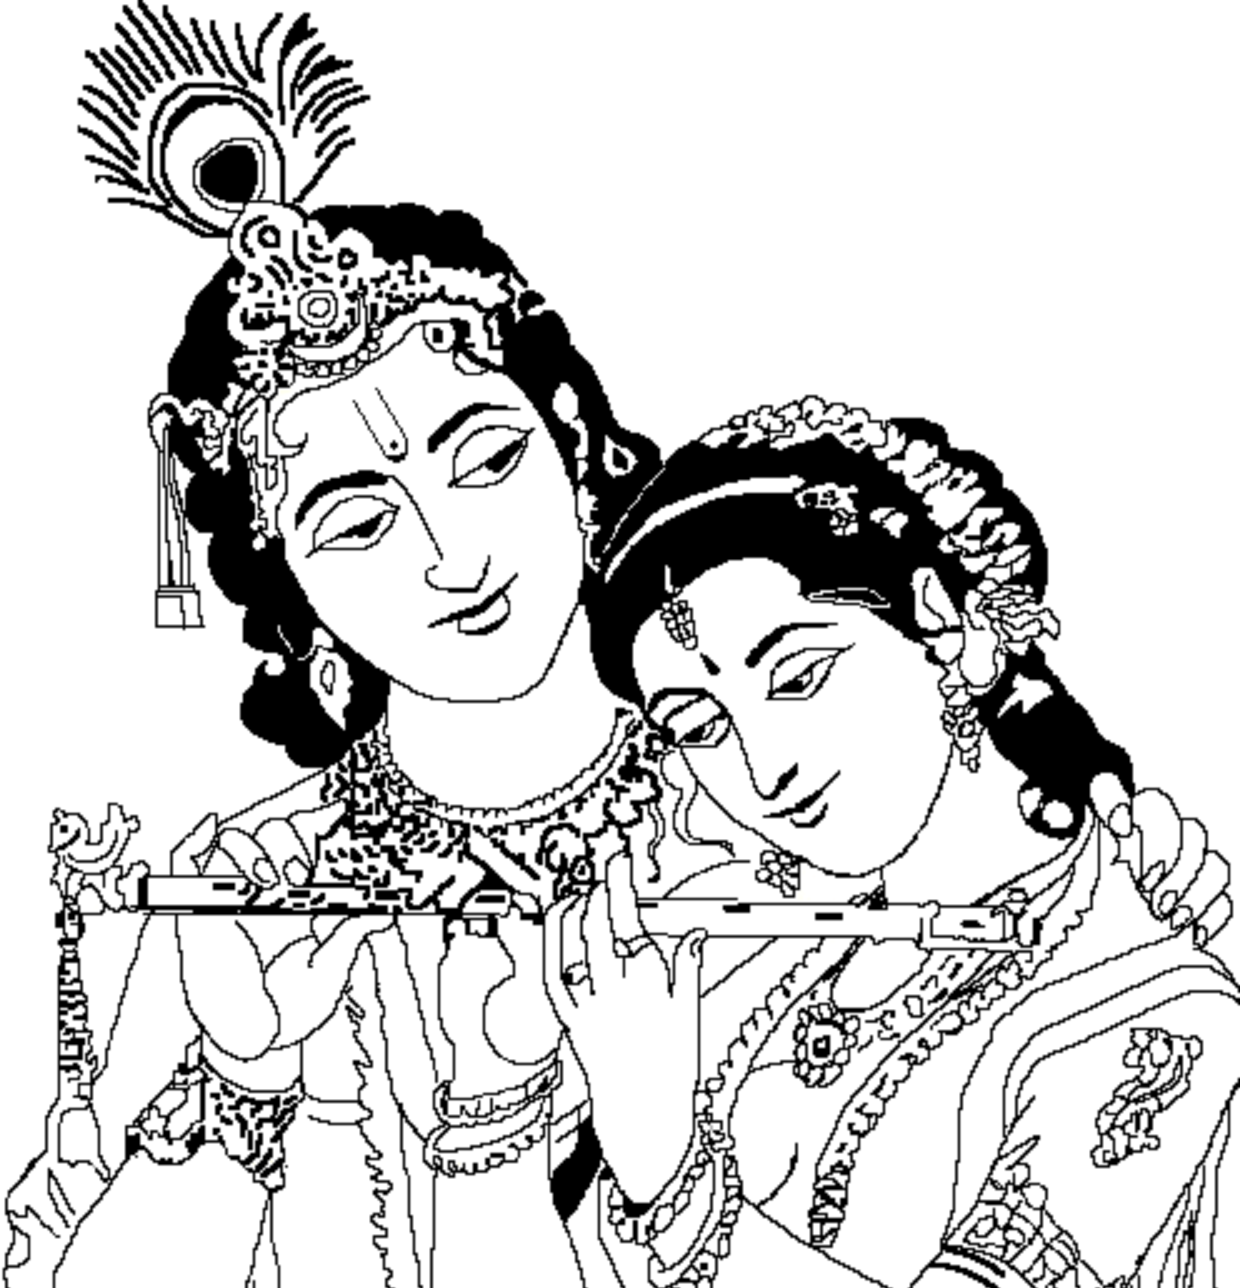 lord radha krishna coloring drawing free wallpaper clipart. lord krishna black and white clipart -